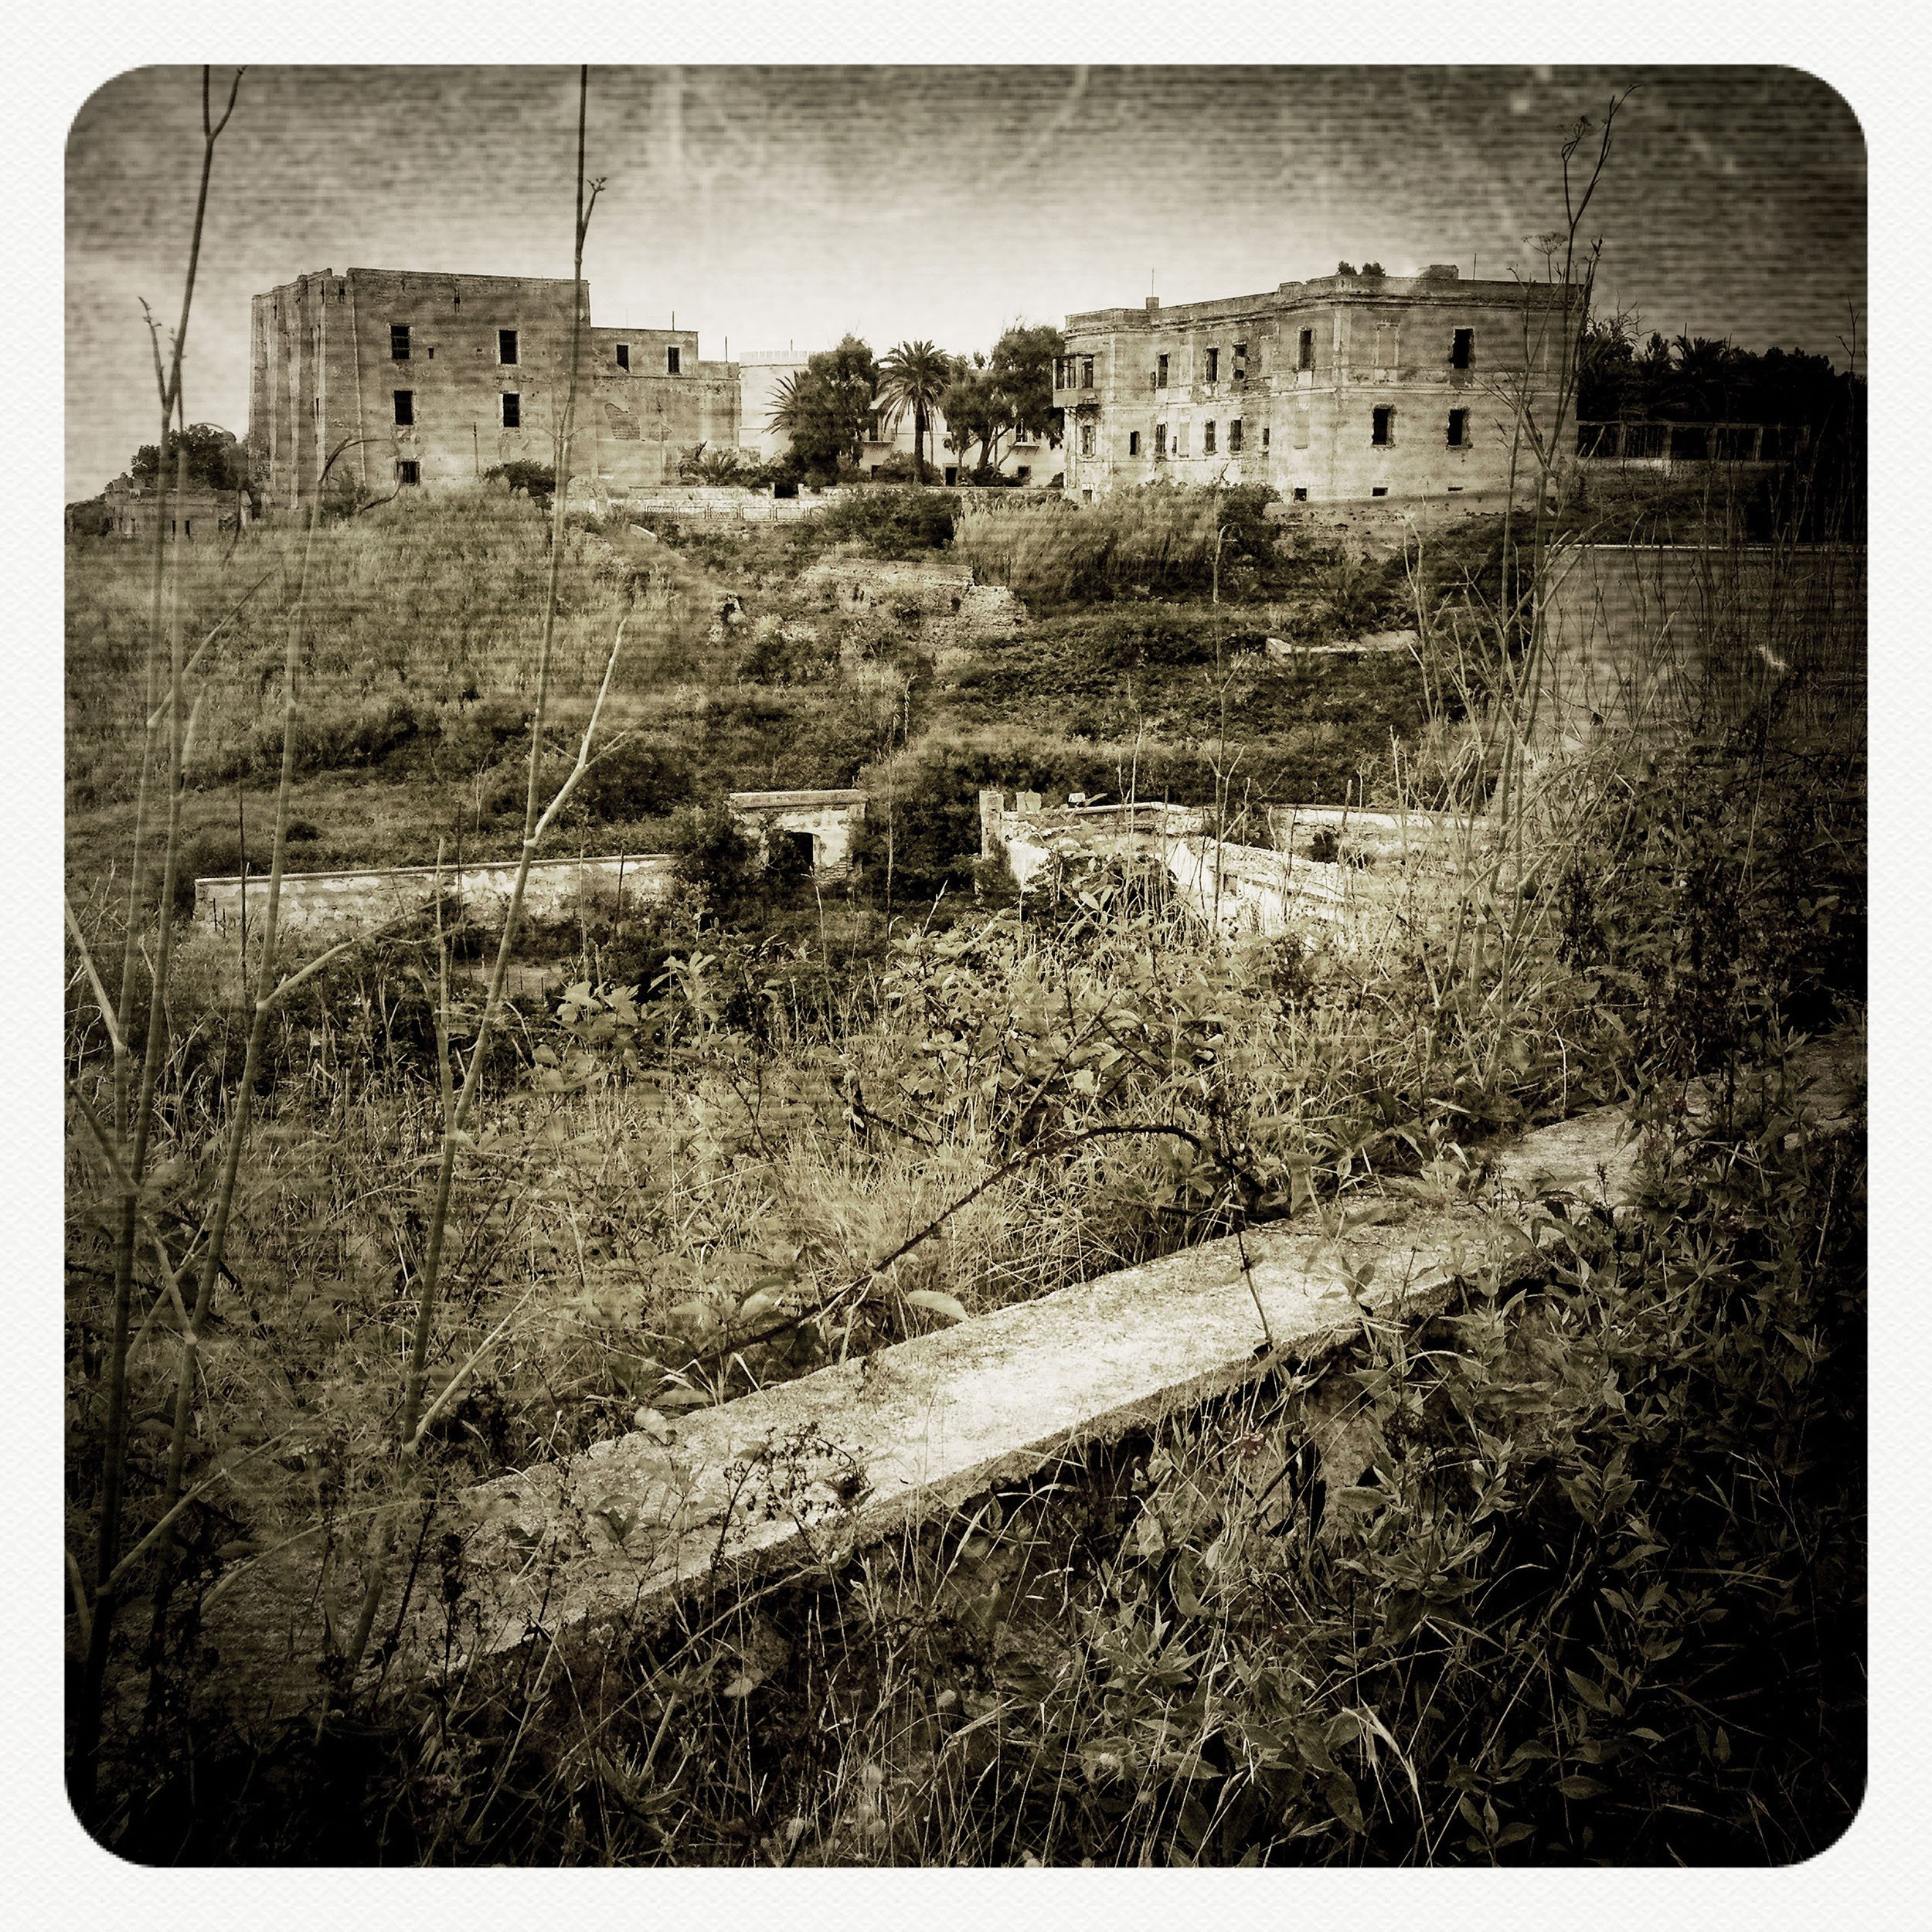 09_18_GhostTowns_02